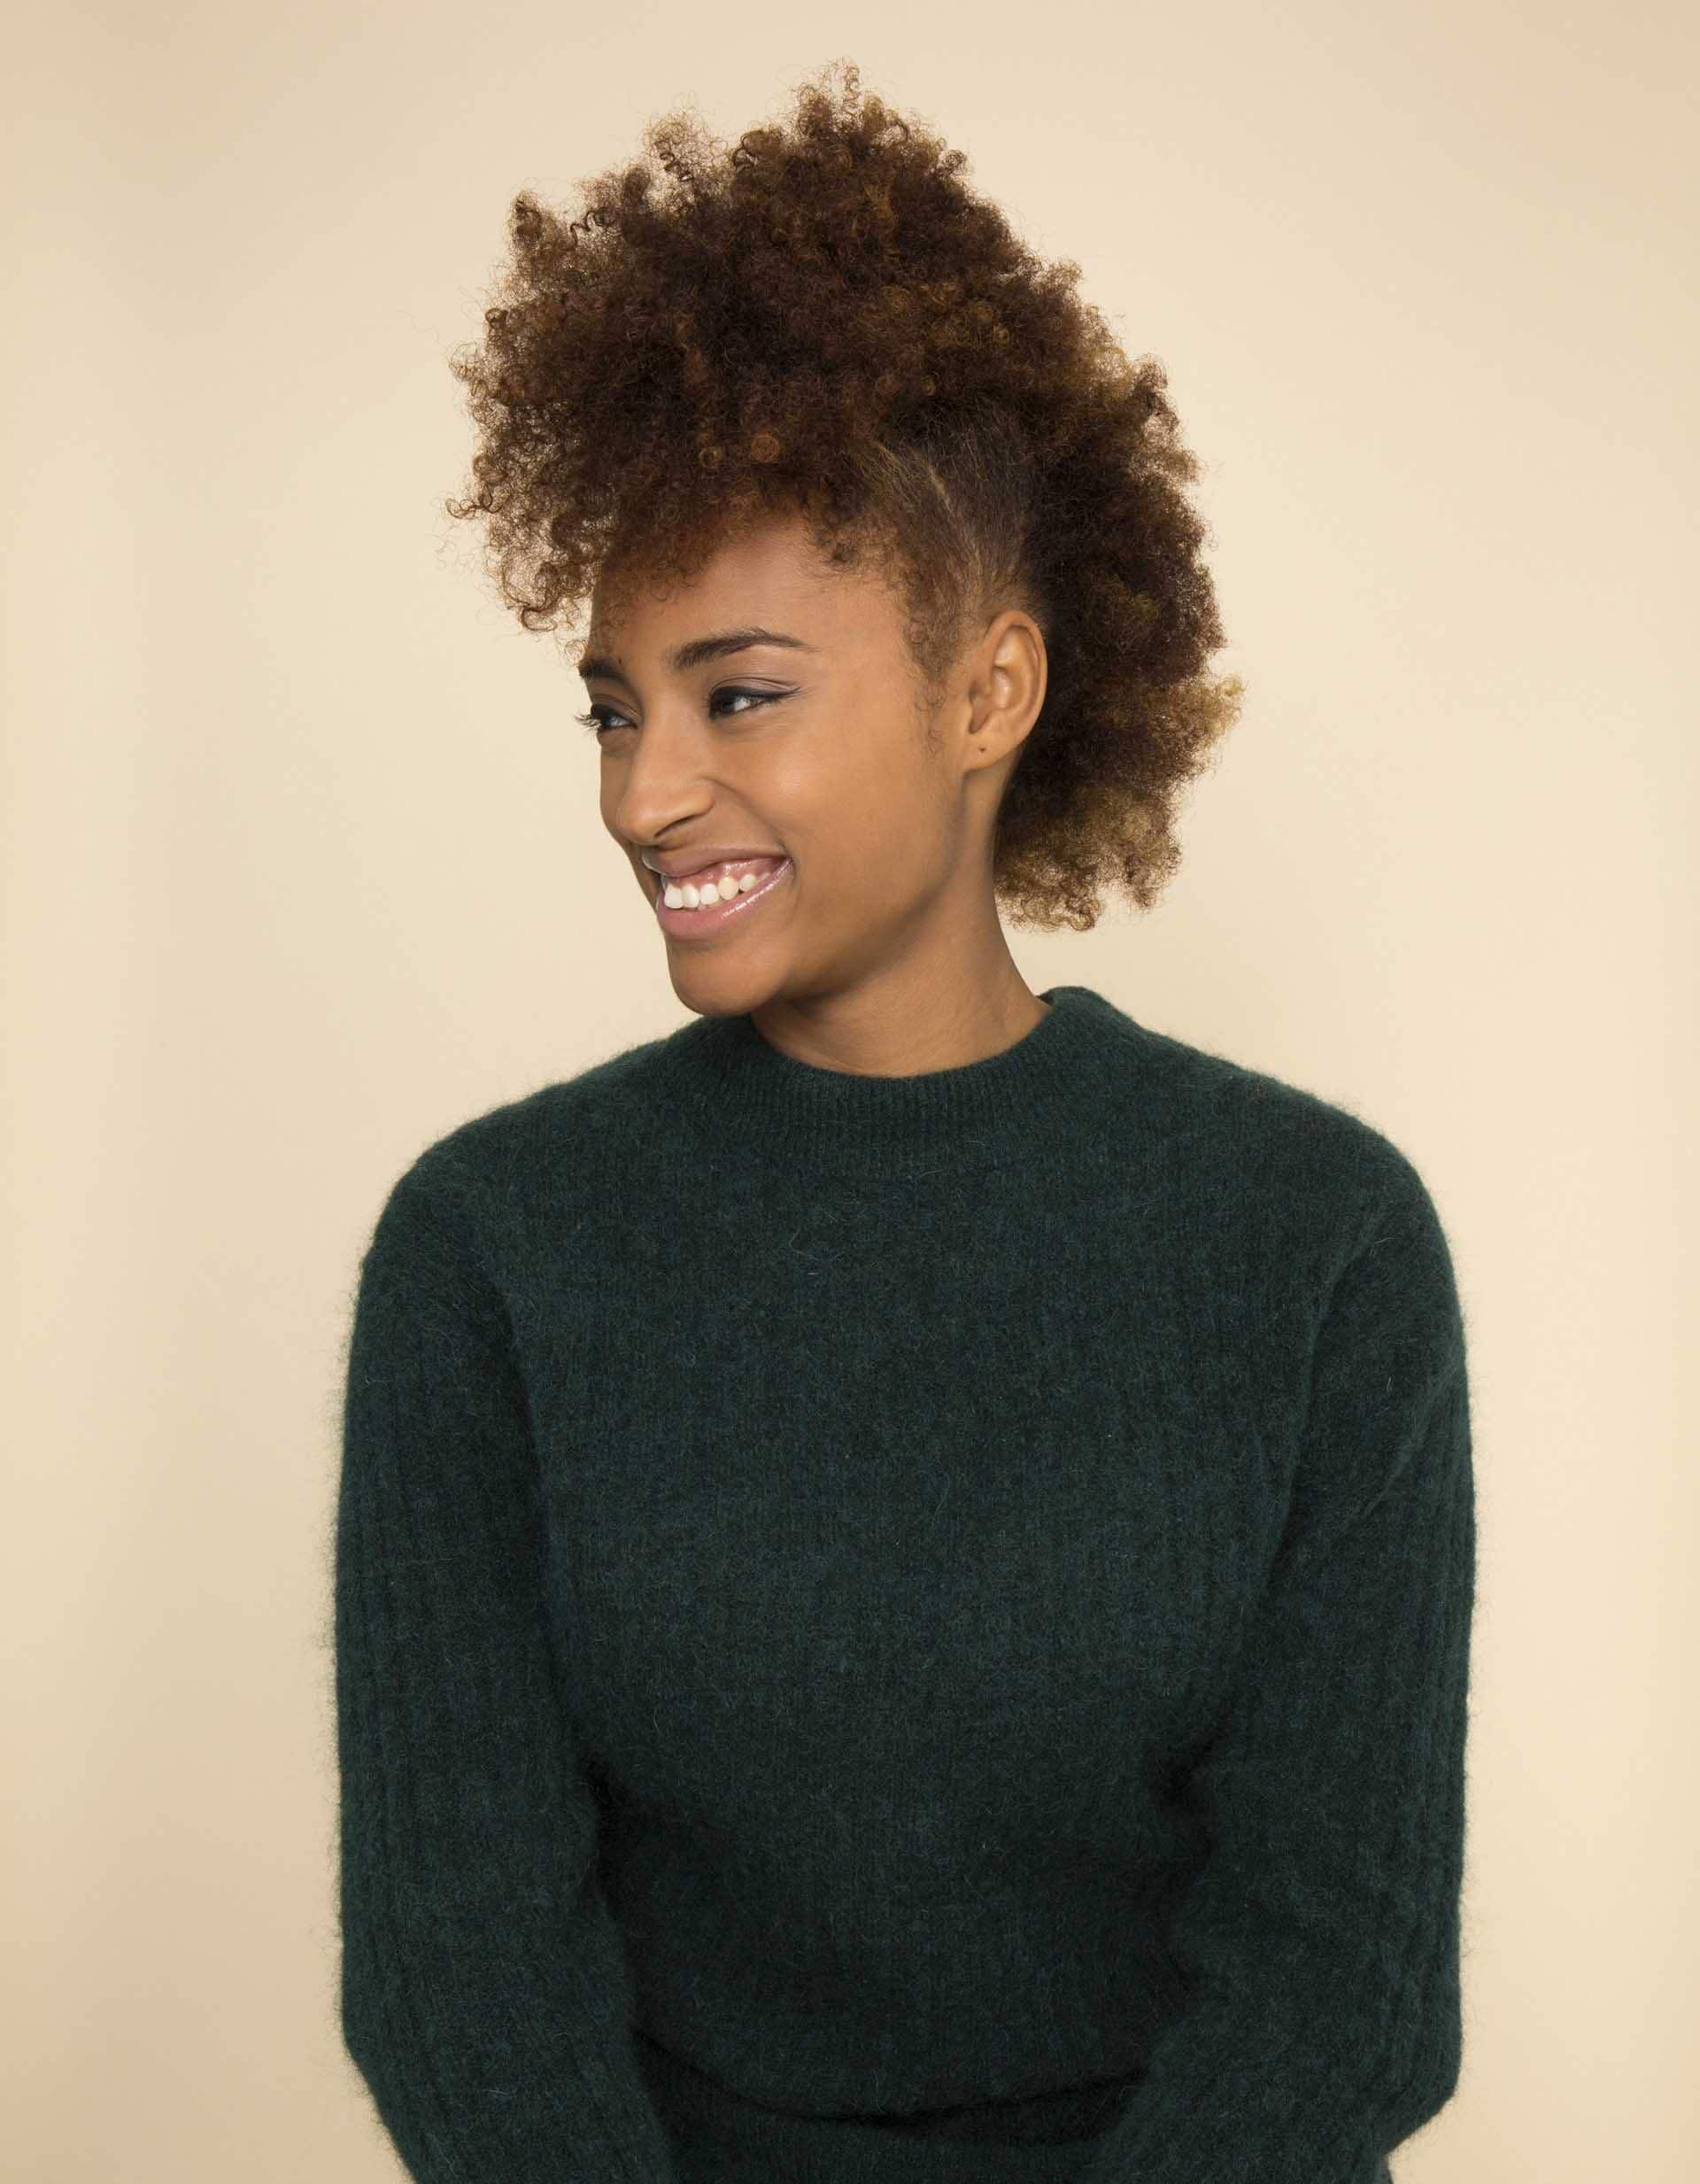 Black history month hair: Close up shot of a woman with natural honey brown afro hair styled into a 'frohawk, wearing green jumper and earrings, posing in a studio